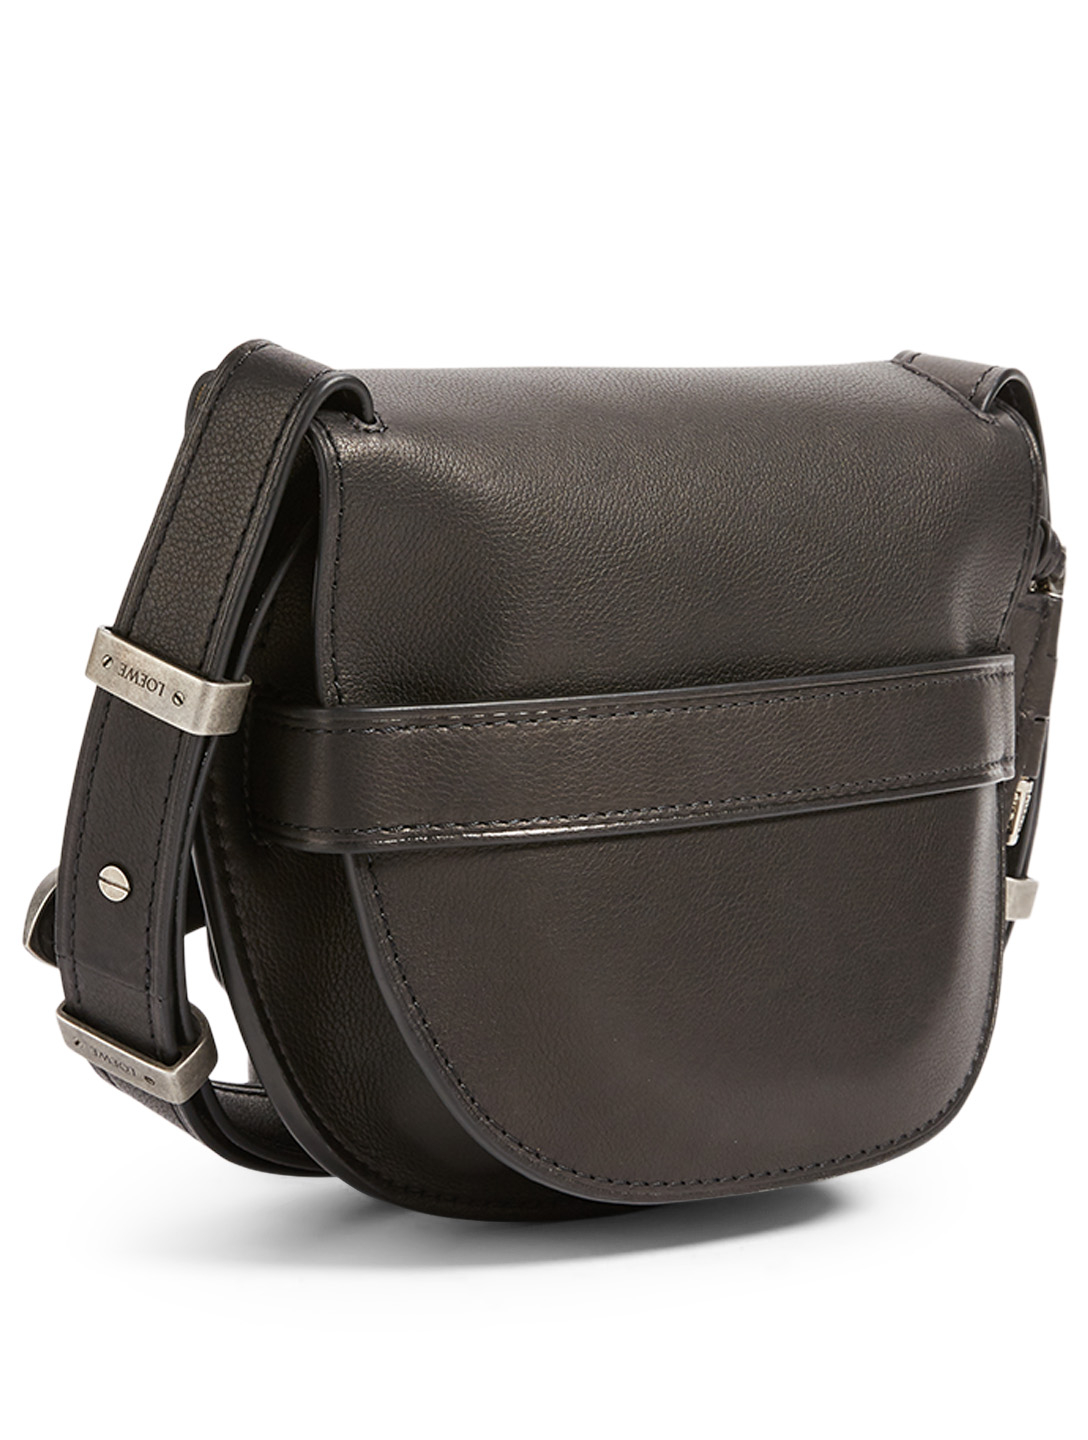 LOEWE Small Gate Western Leather Crossbody Bag Women's Black